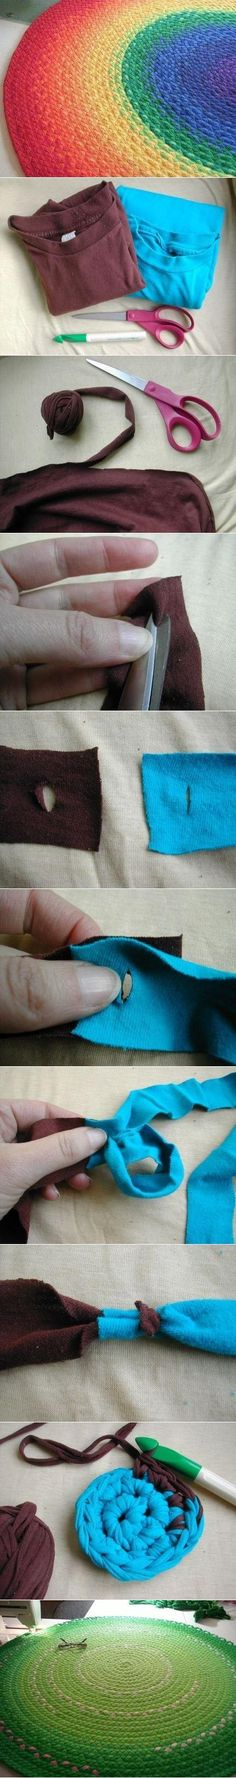 DIY Old T-Shirt Carpet DIY Projects